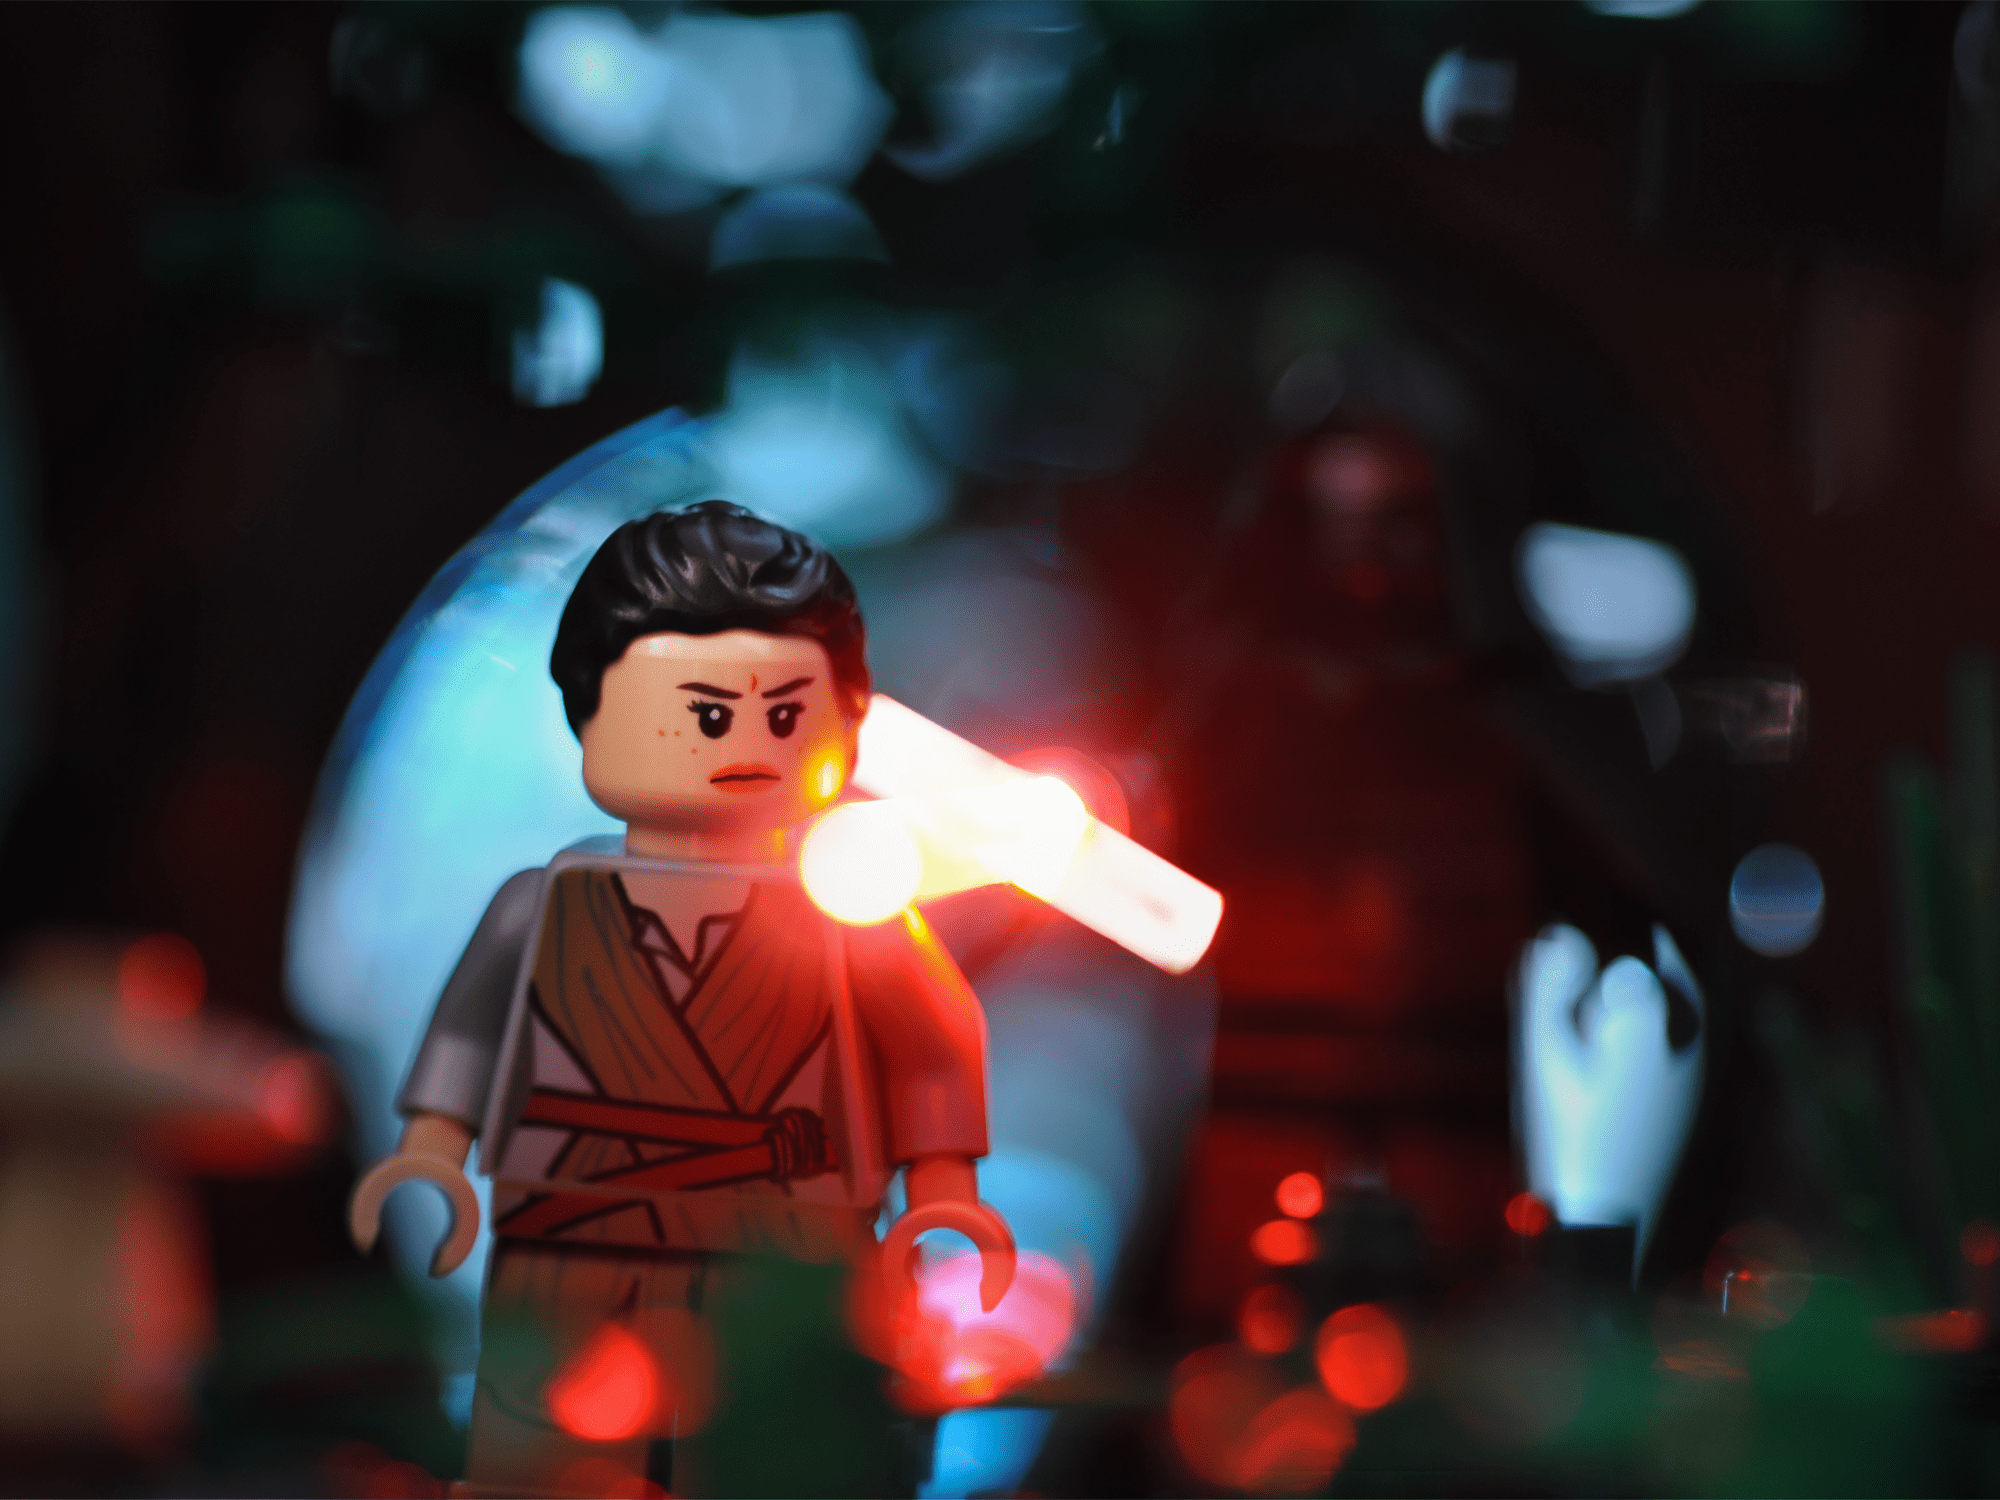 A look at the Lego Star Wars minifigures from 2017.